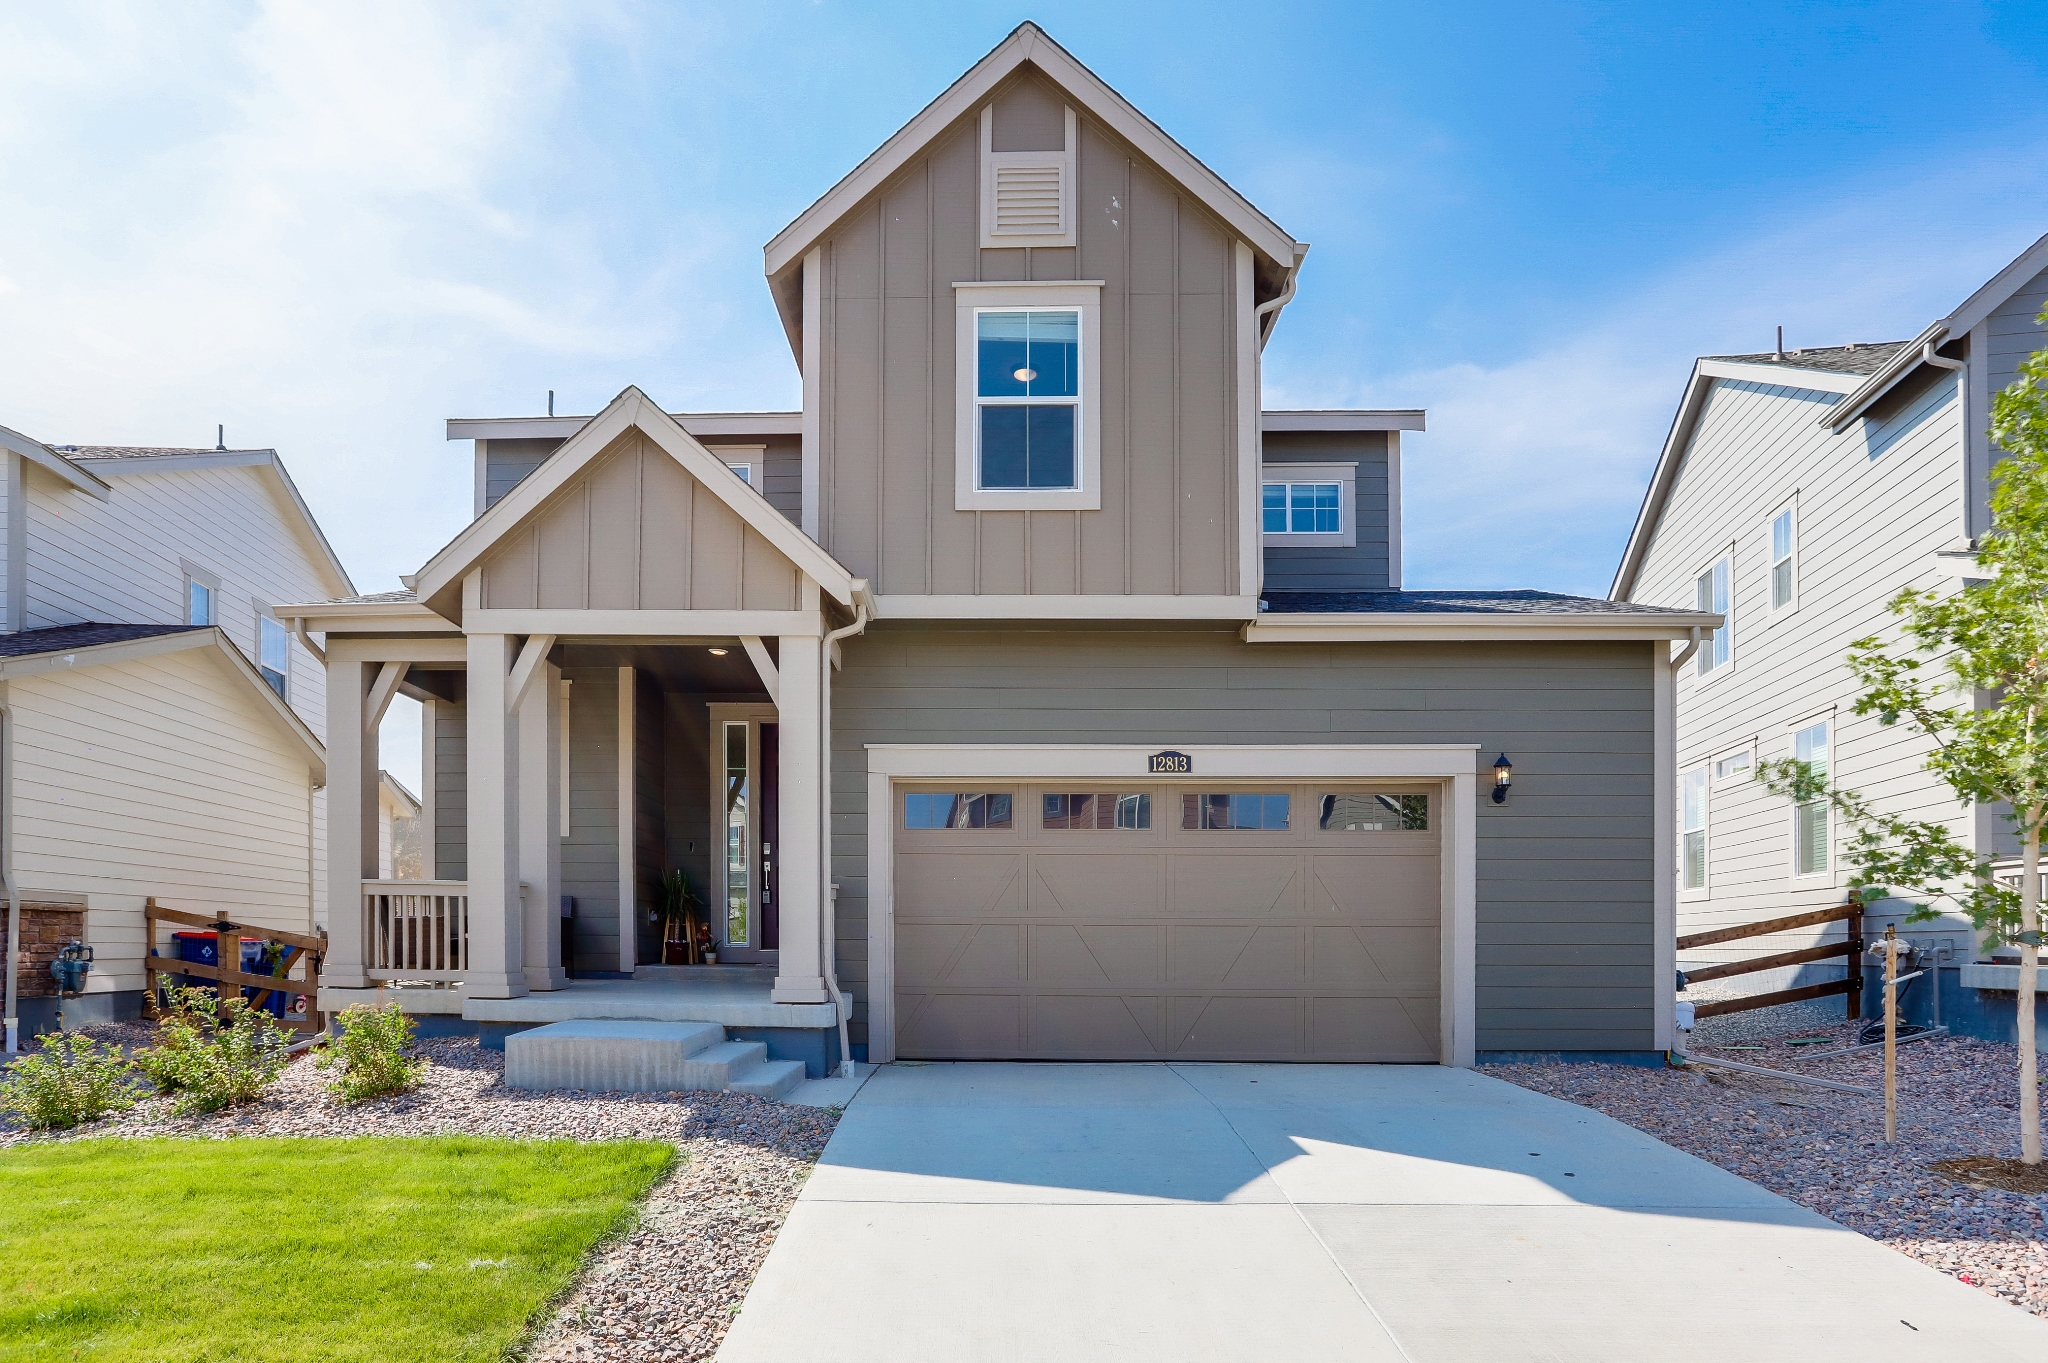 REAL ESTATE LISTING: 12813 Clearview St Firestone Front Exterior